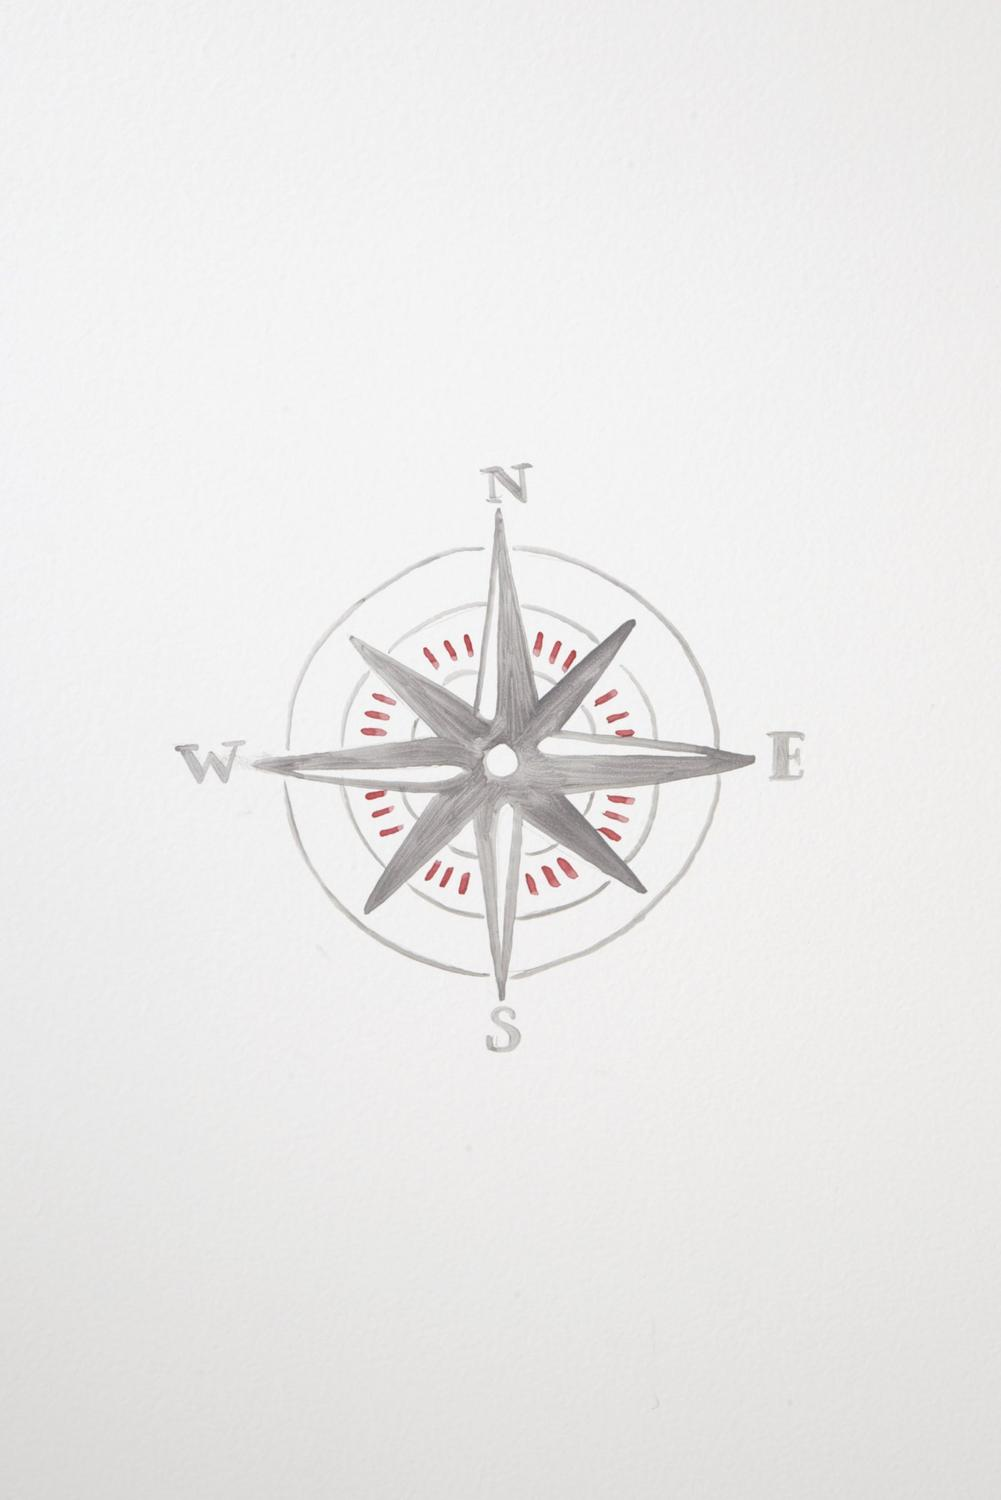 Compass painting for Vintage Transport themed kids room | Dragons of Walton Street